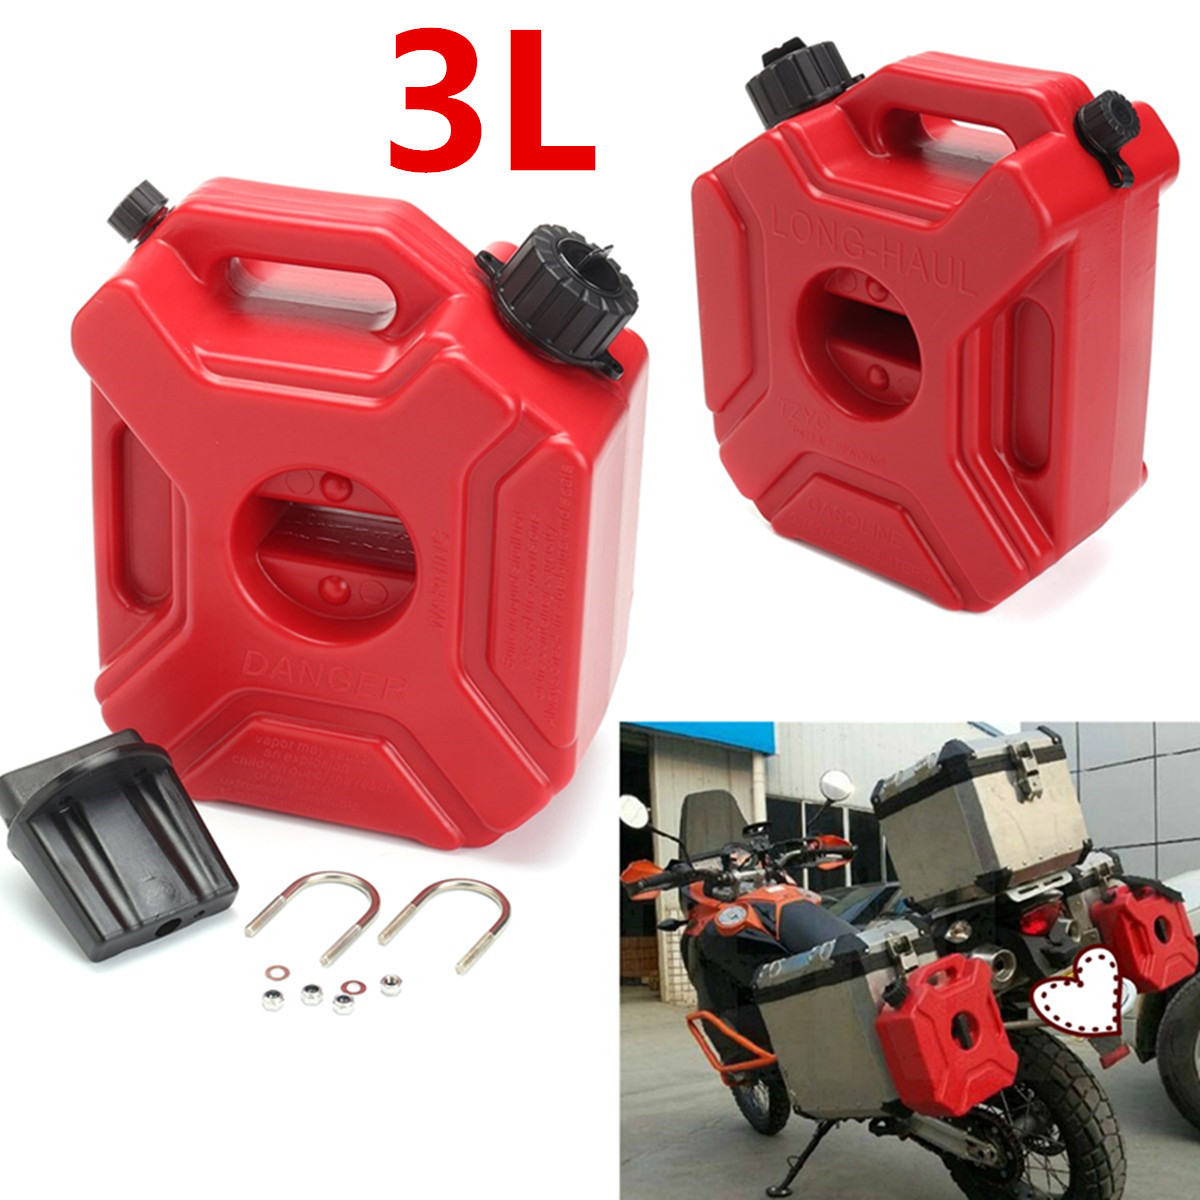 Portable Jerry Can Gas Fuel Tank Plastic Petrol Car Gokart Spare Container Gasoline Petrol Tanks Canister